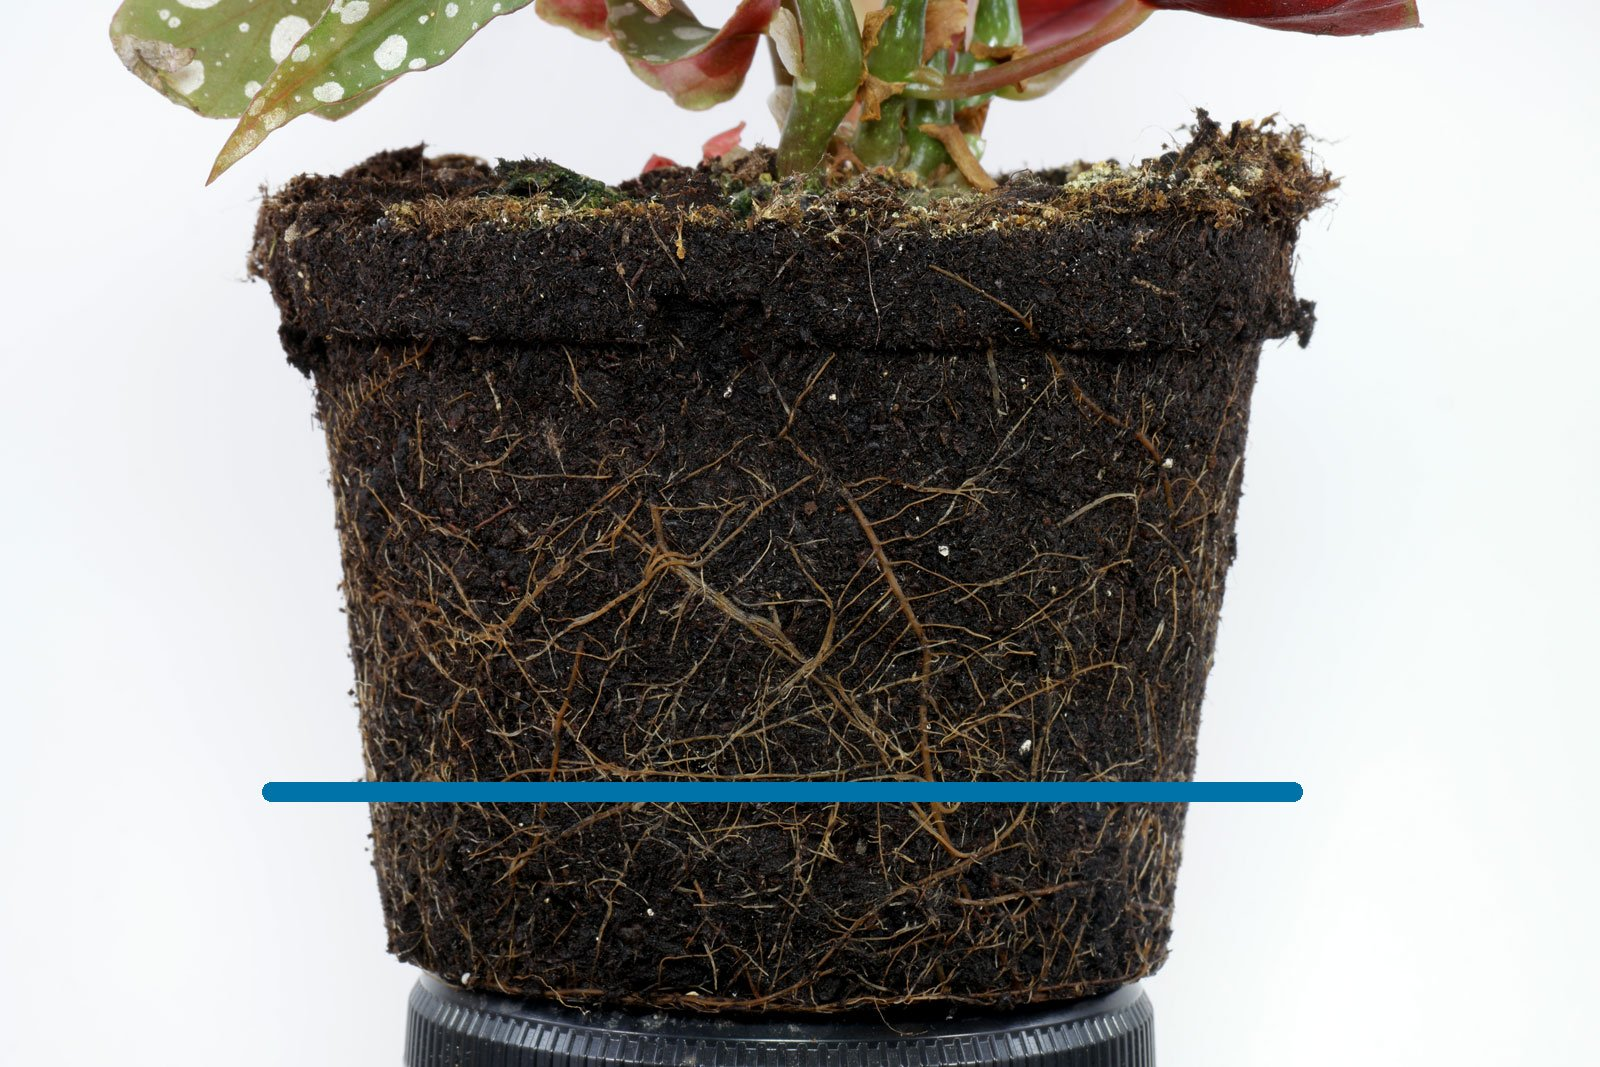 Begonia maculata roots